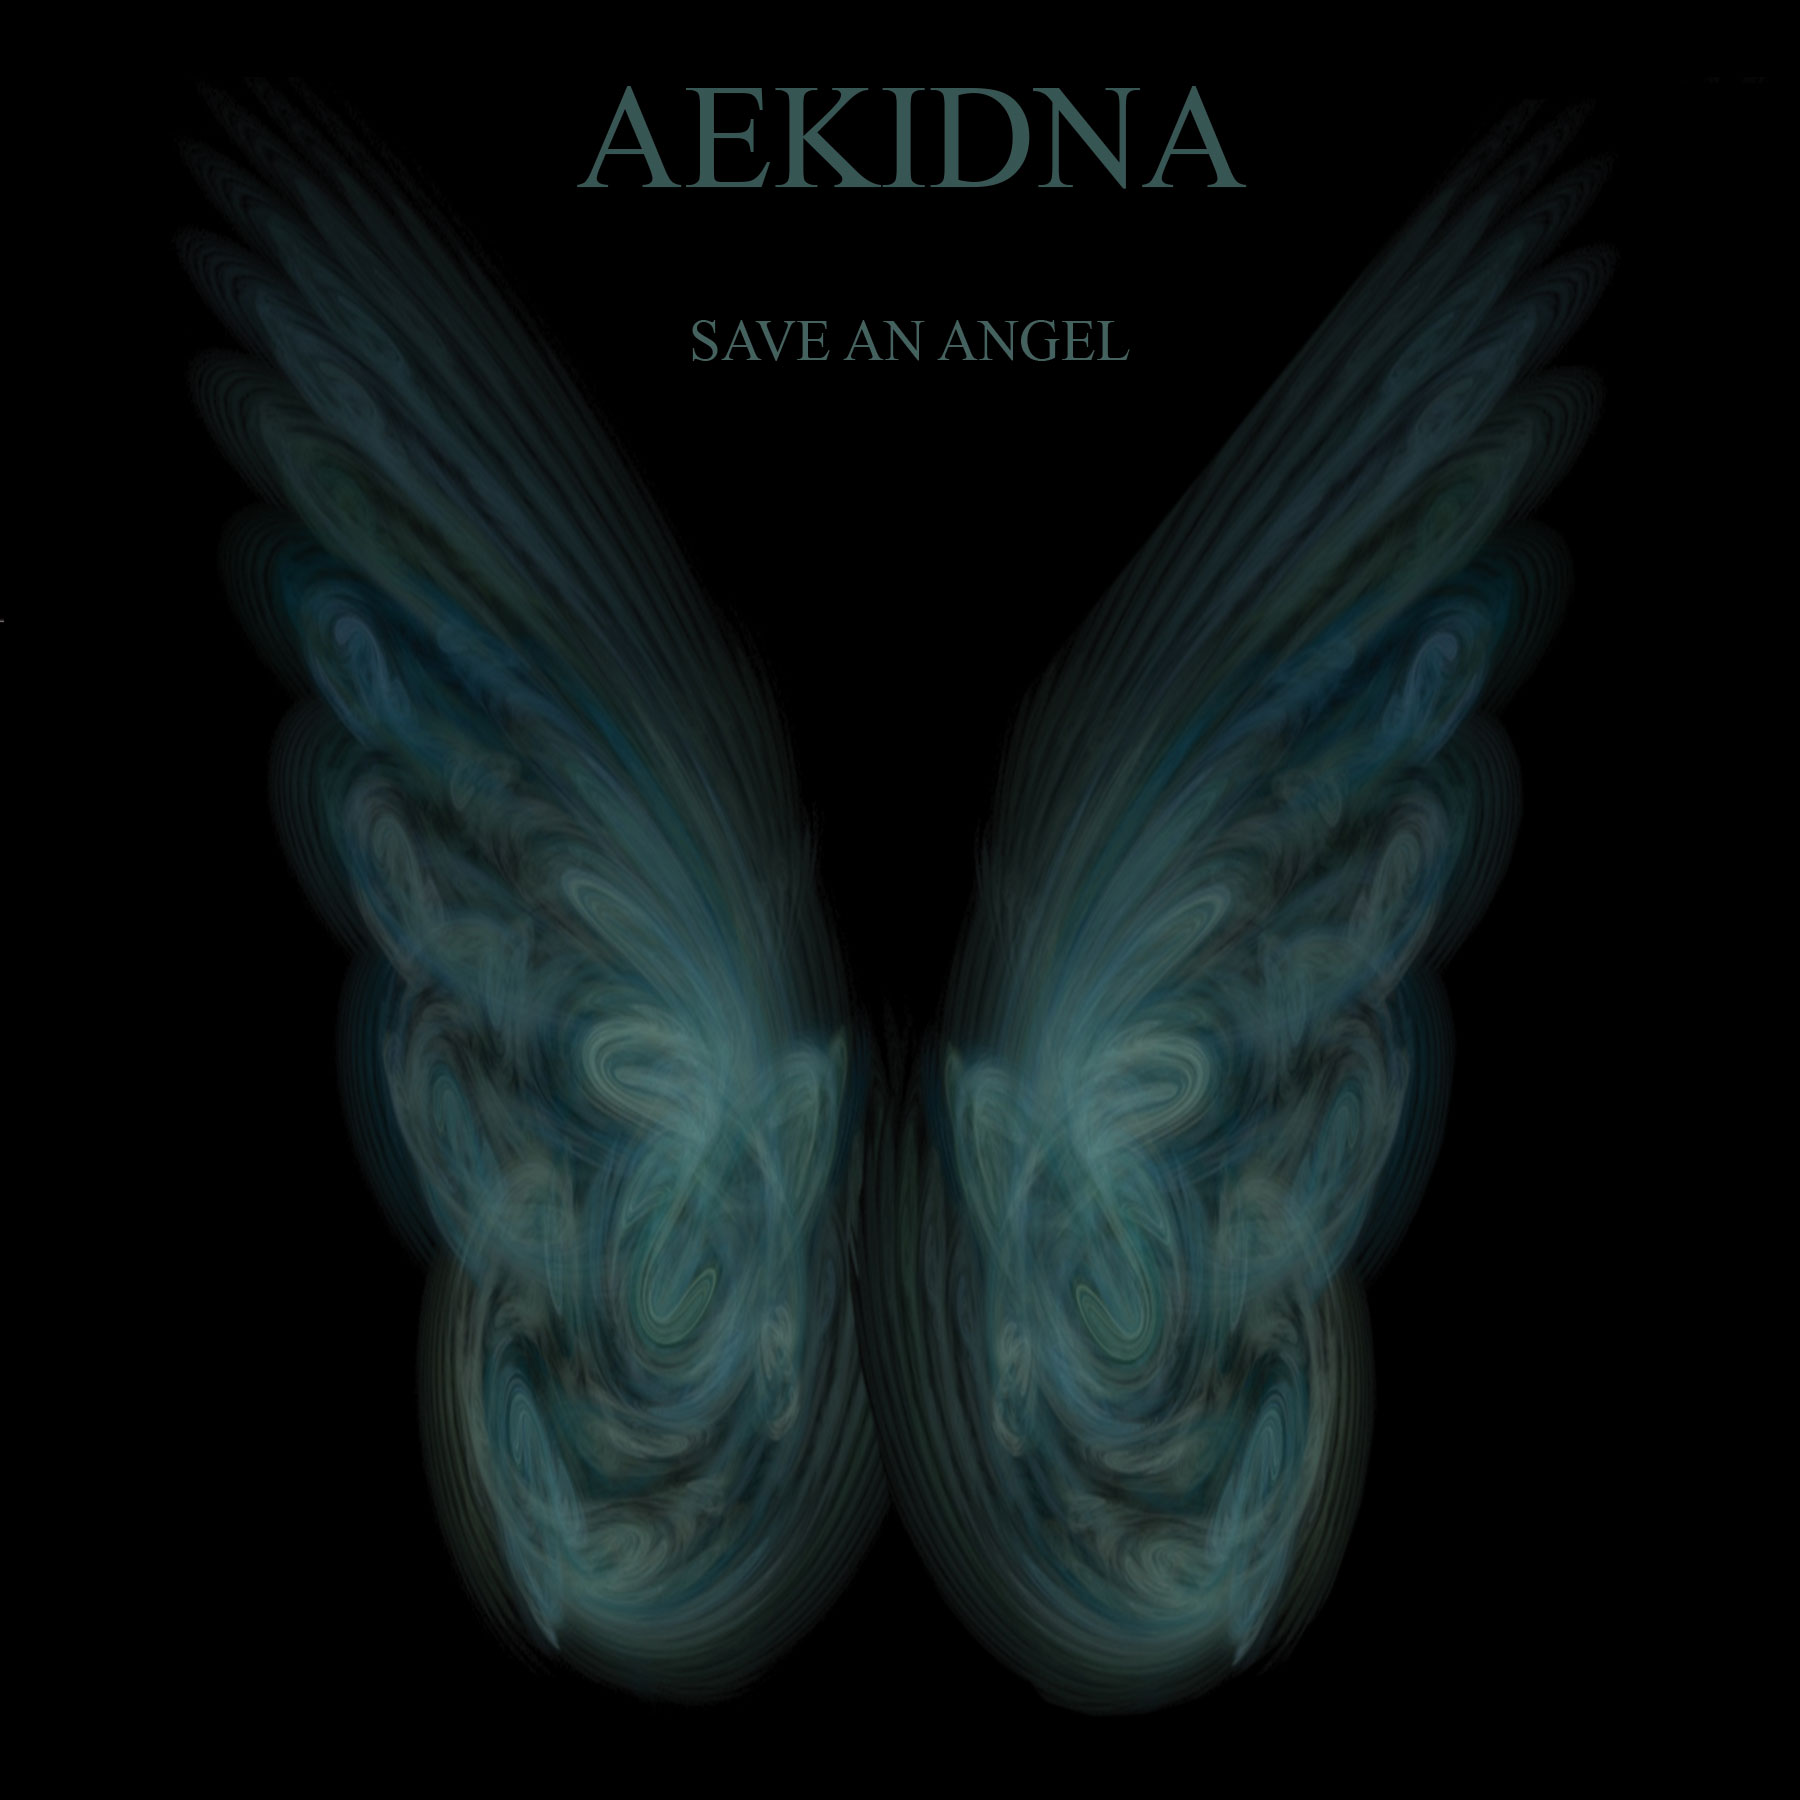 Aekidna - Save an angel